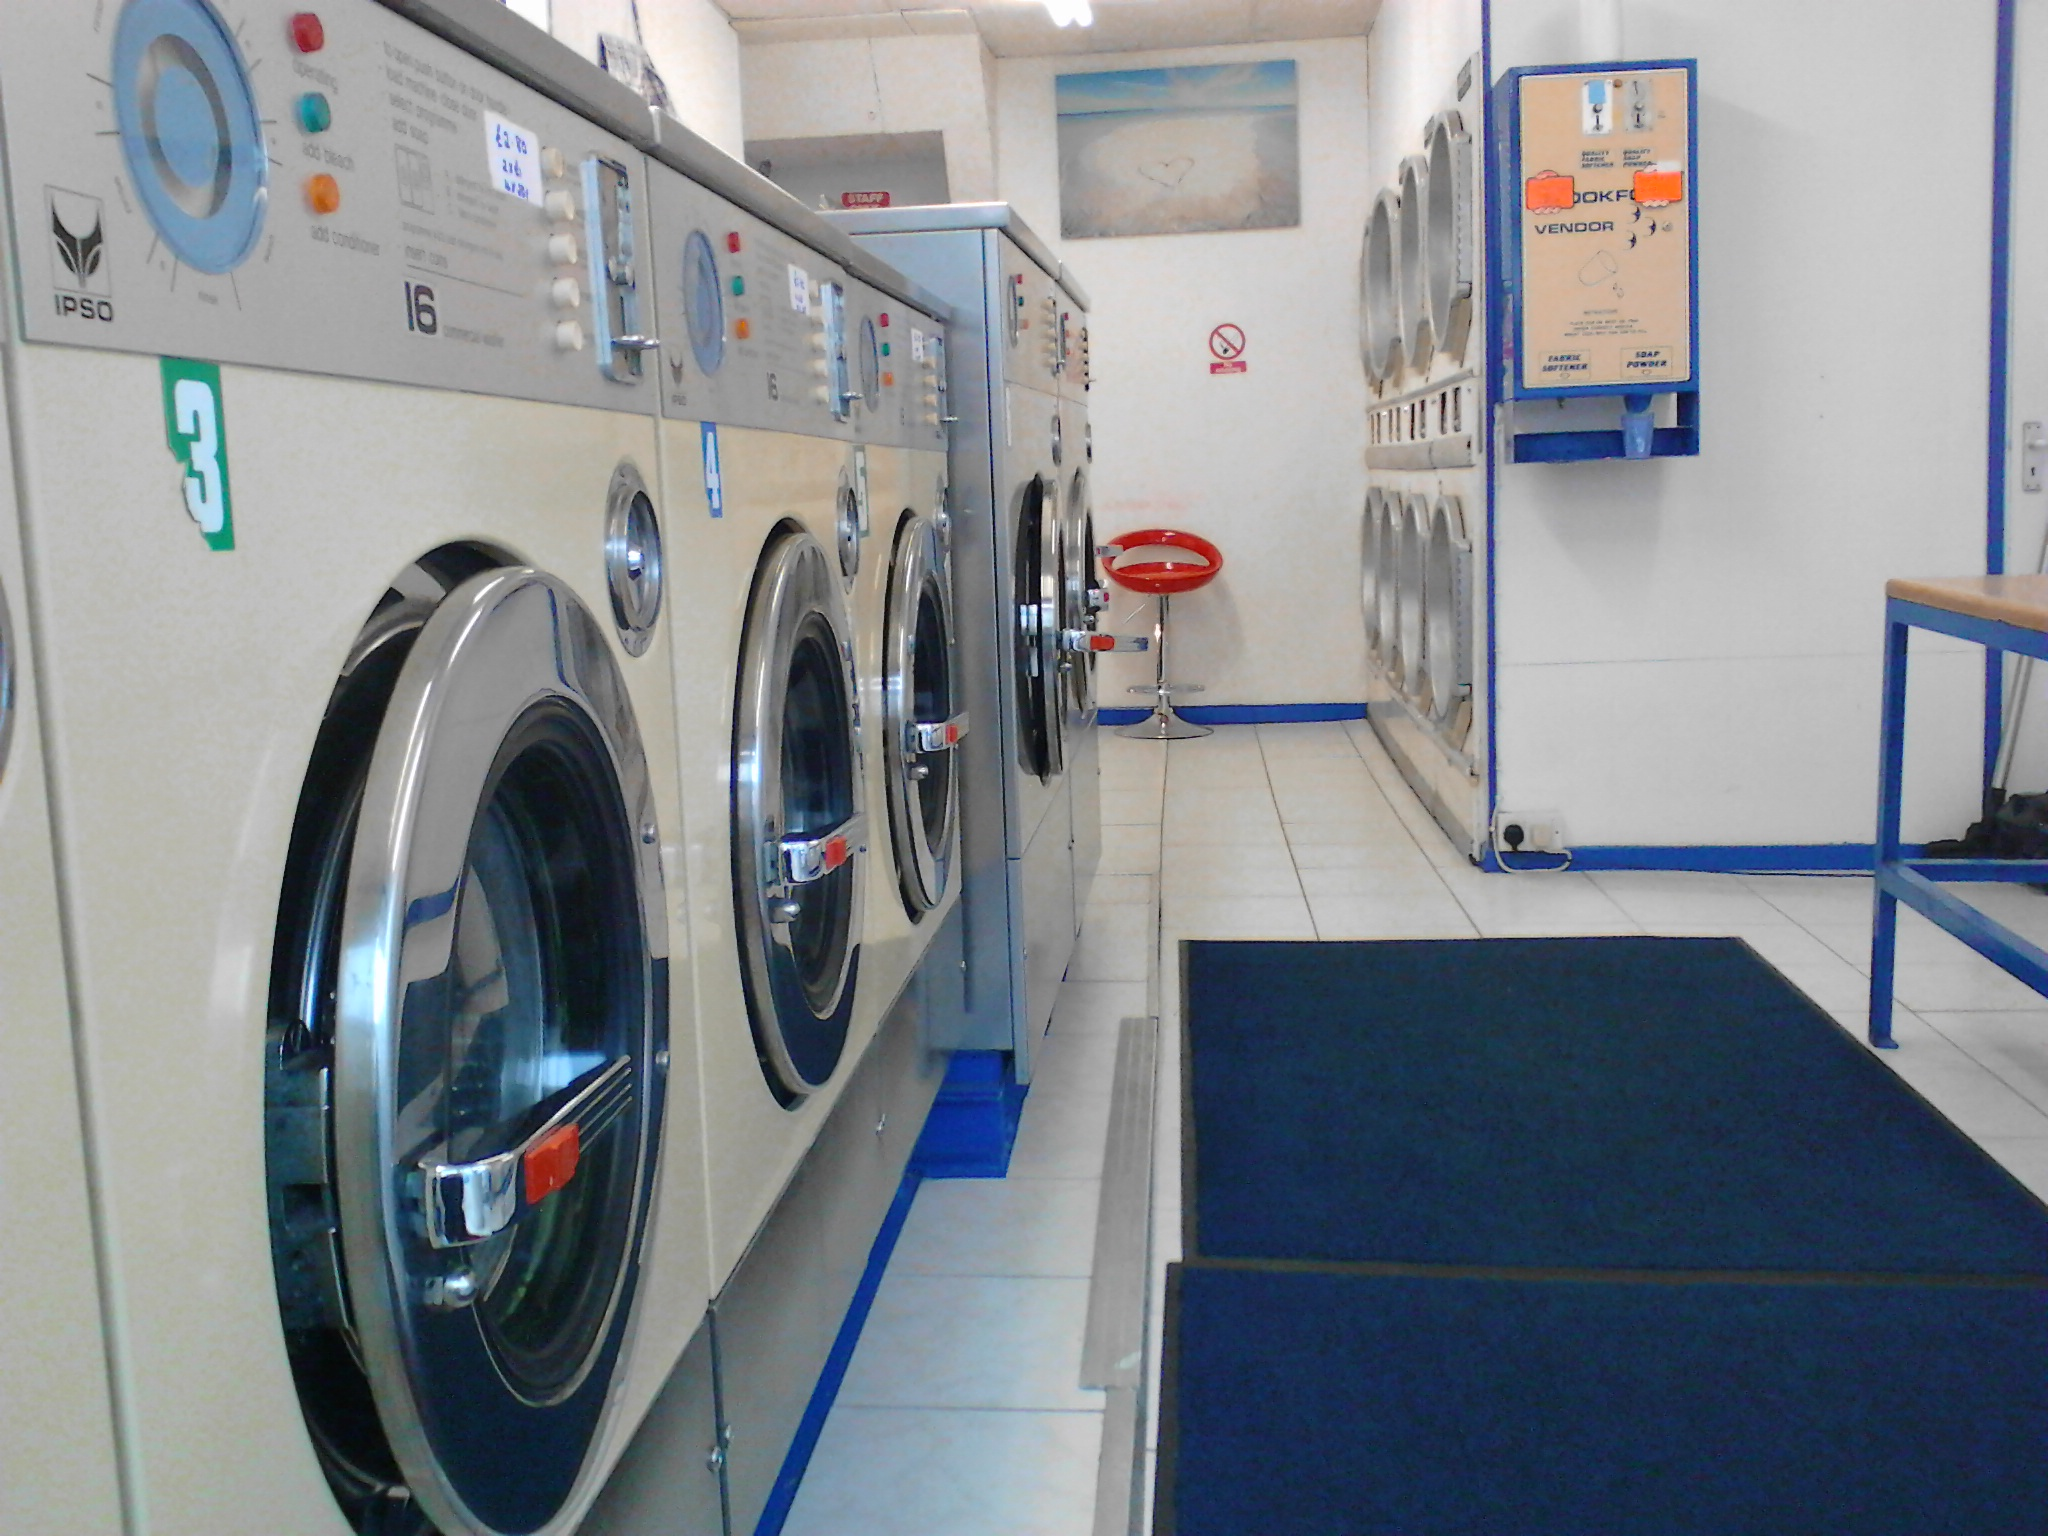 Kings Launderette Machines.jpg